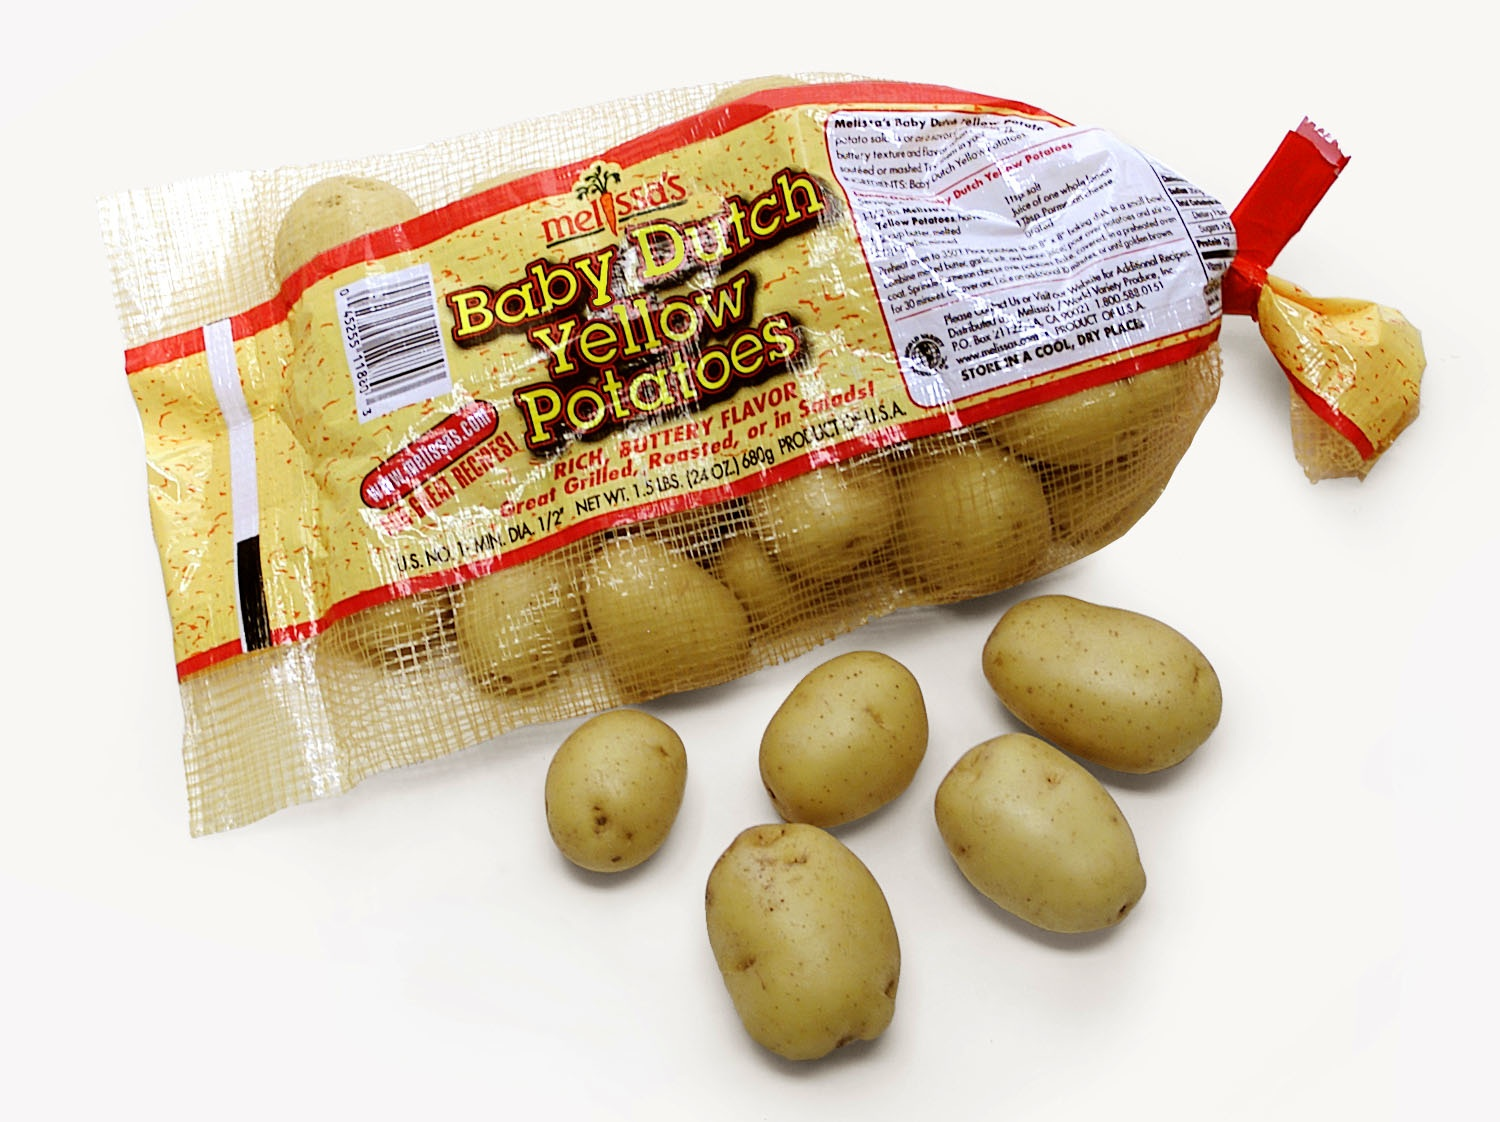 Extraordinary A Pound How Many Small Potatoes Recipes Baby Dutch How Many Seed Potatoes Baby Dutch Yellow Potatoes Food Writer Food Reviews Recipes A Pound houzz 01 How Many Potatoes In A Pound